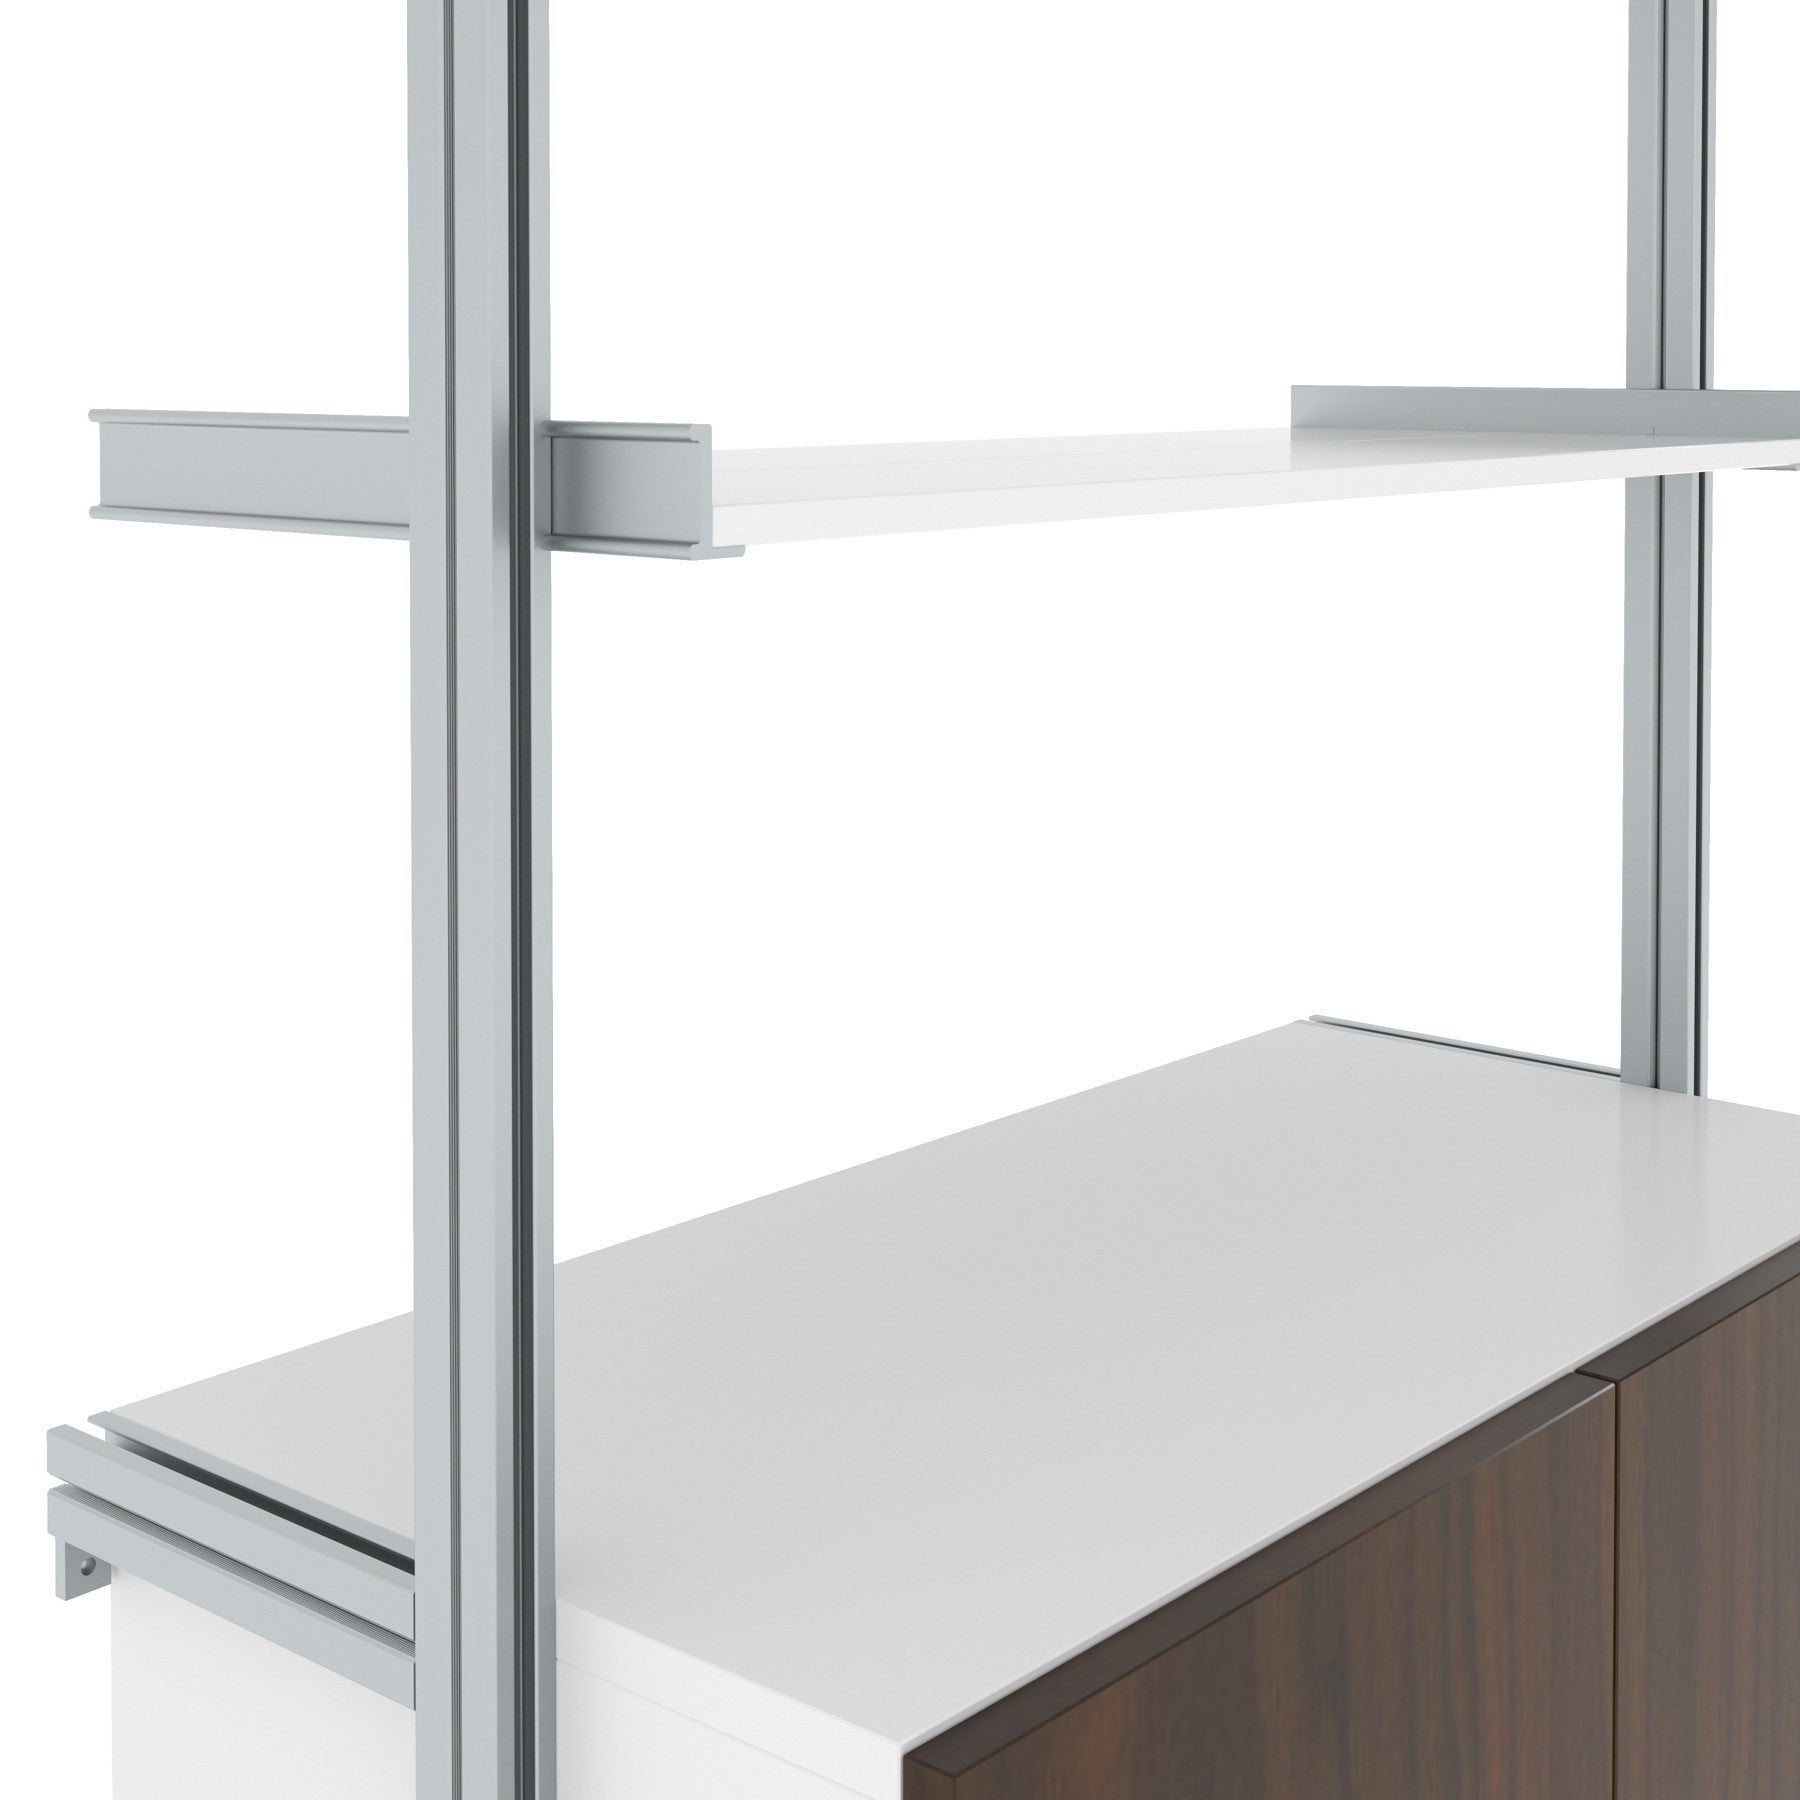 3Bay RAD- Pole Mounted Aluminum Shelving with Sliding Door Cabinets